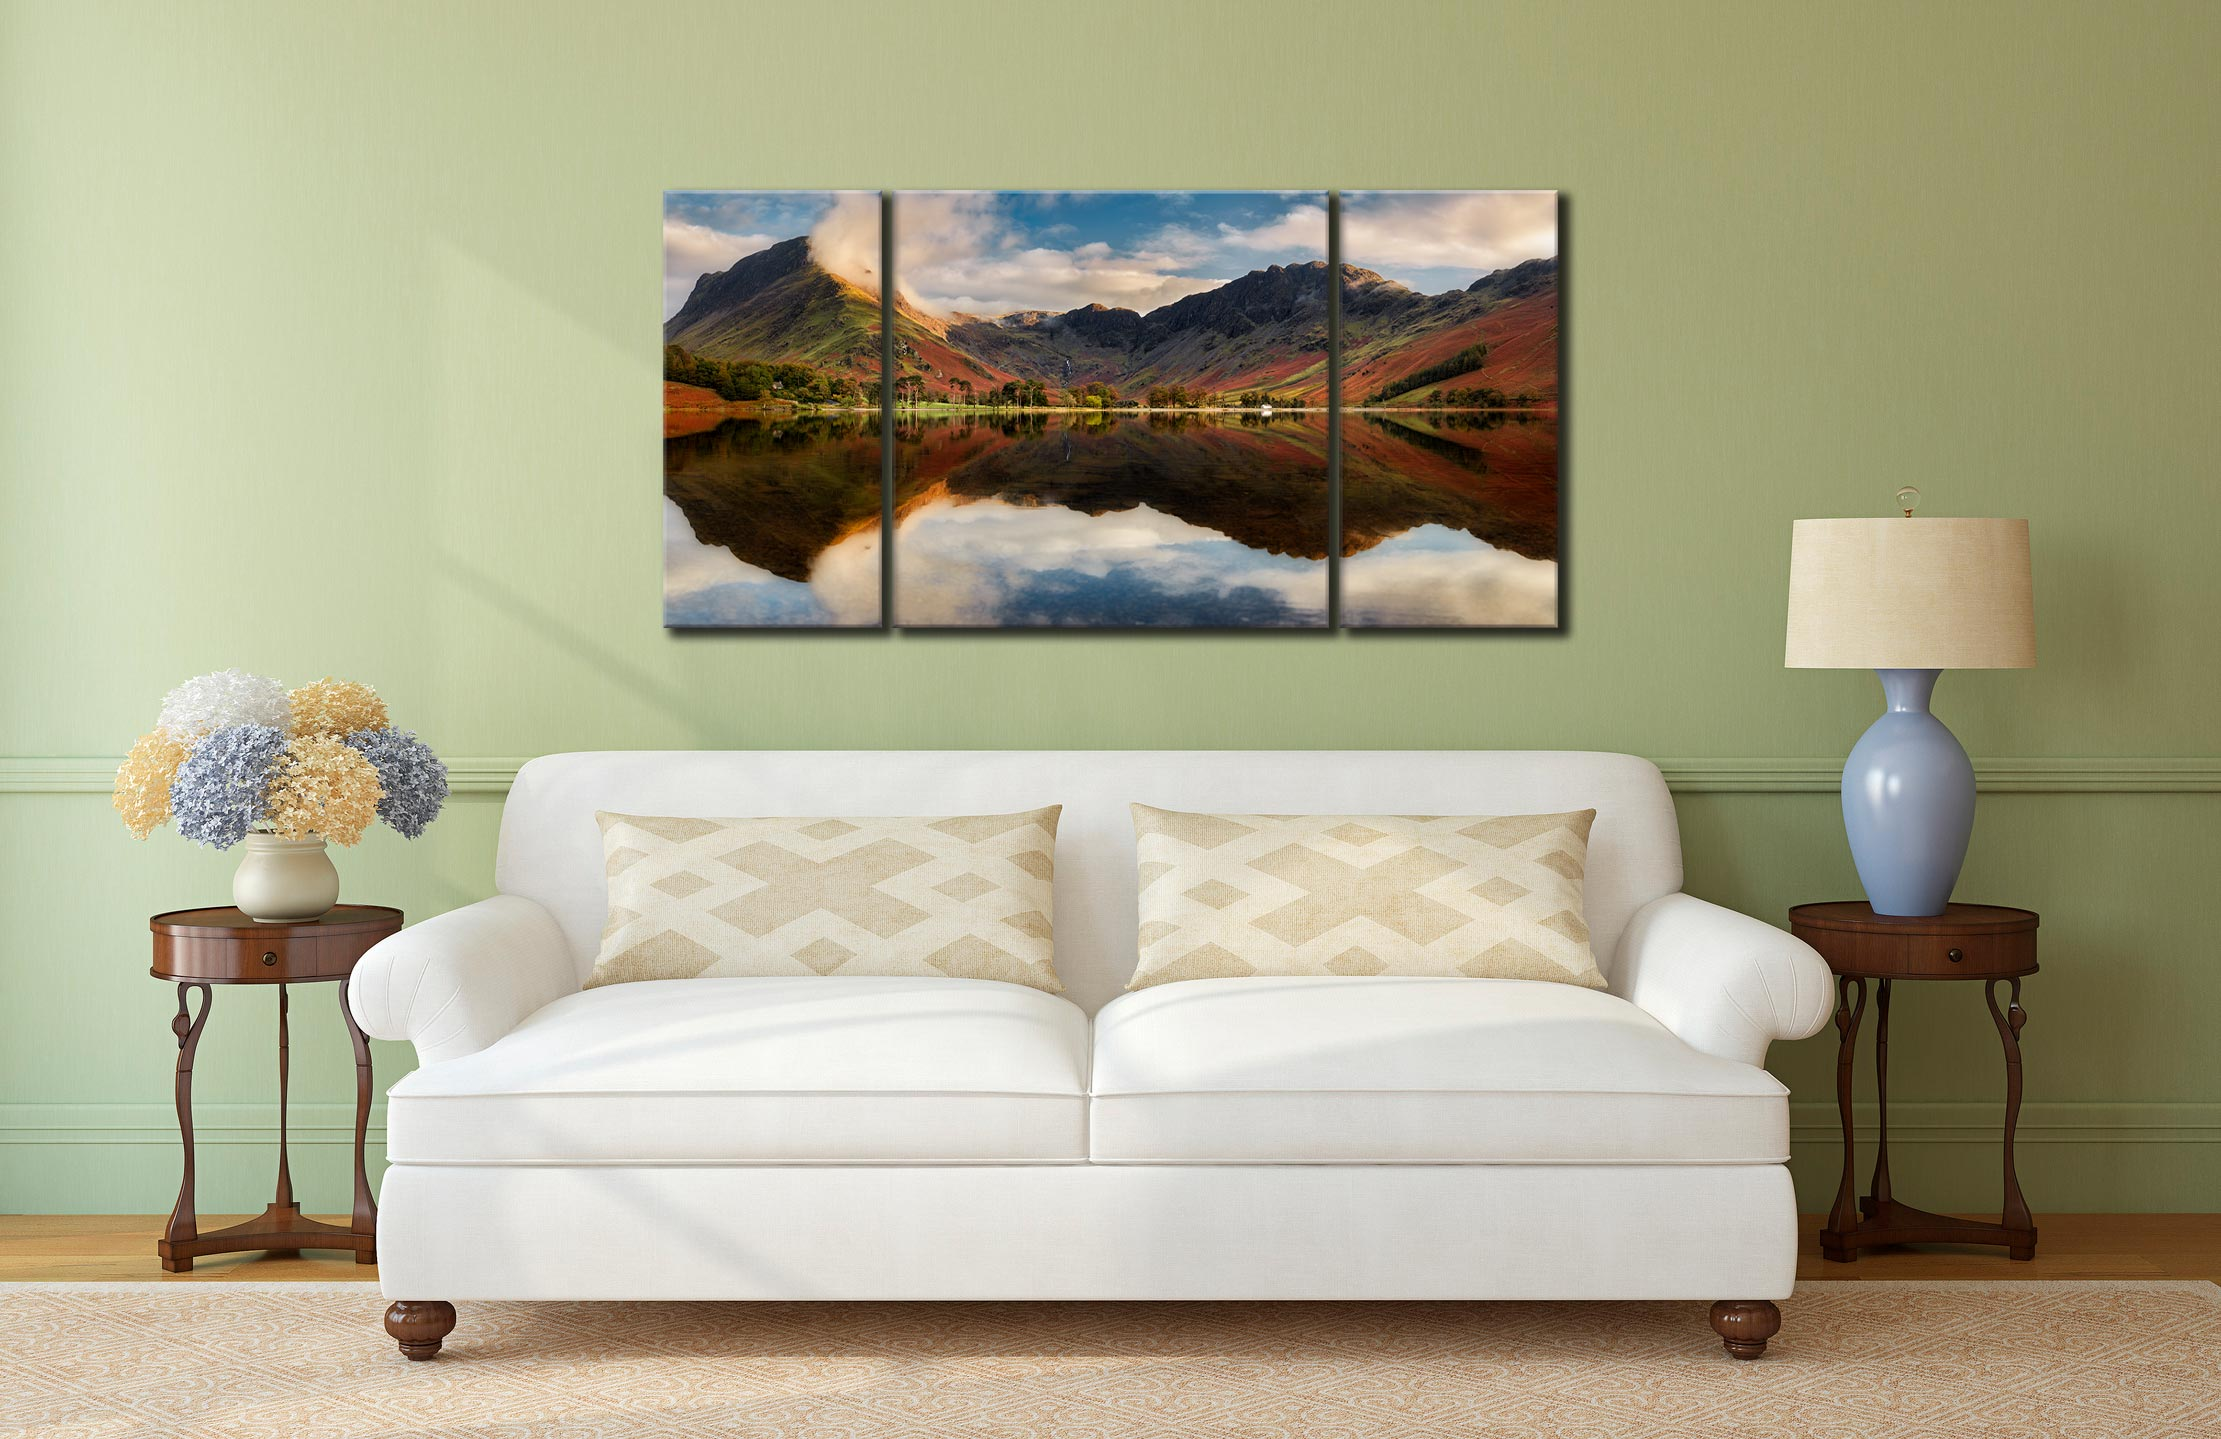 Buttermere Evening Light - 3 Panel Wide Centre Canvas on Wall